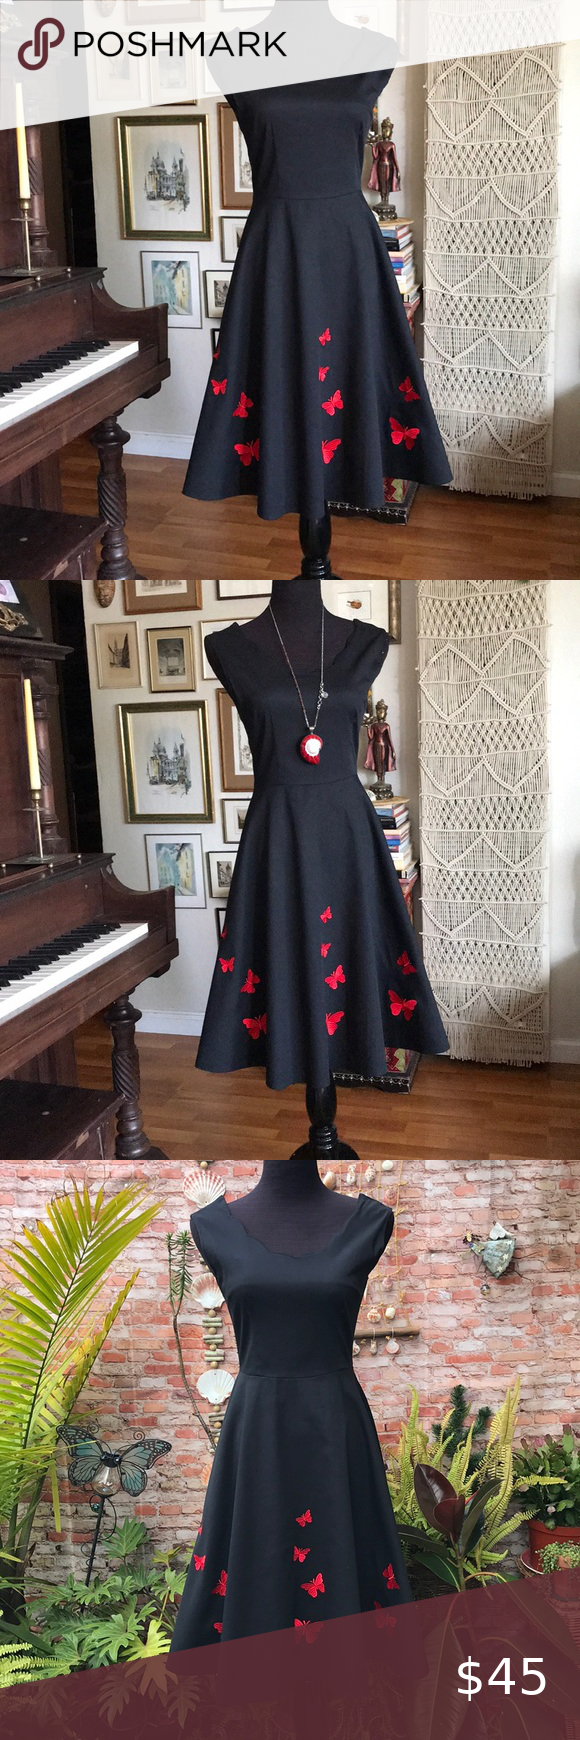 Little Black Dress With Embroidered Butterflies Little Black Dress Dresses Black Dress [ 1740 x 580 Pixel ]